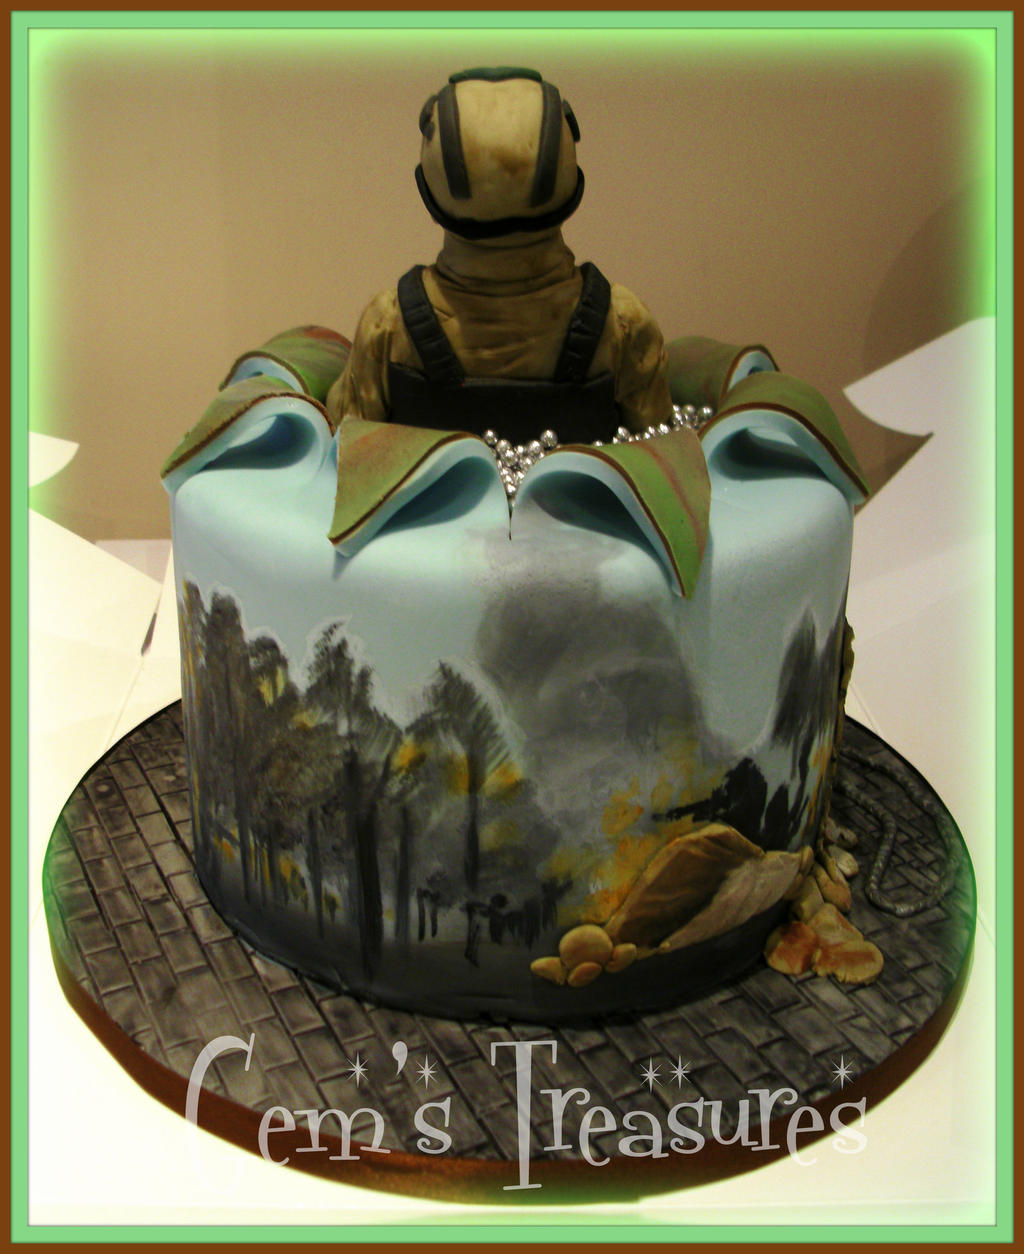 Call Of Duty Cake By Gertygetsgangster On Deviantart